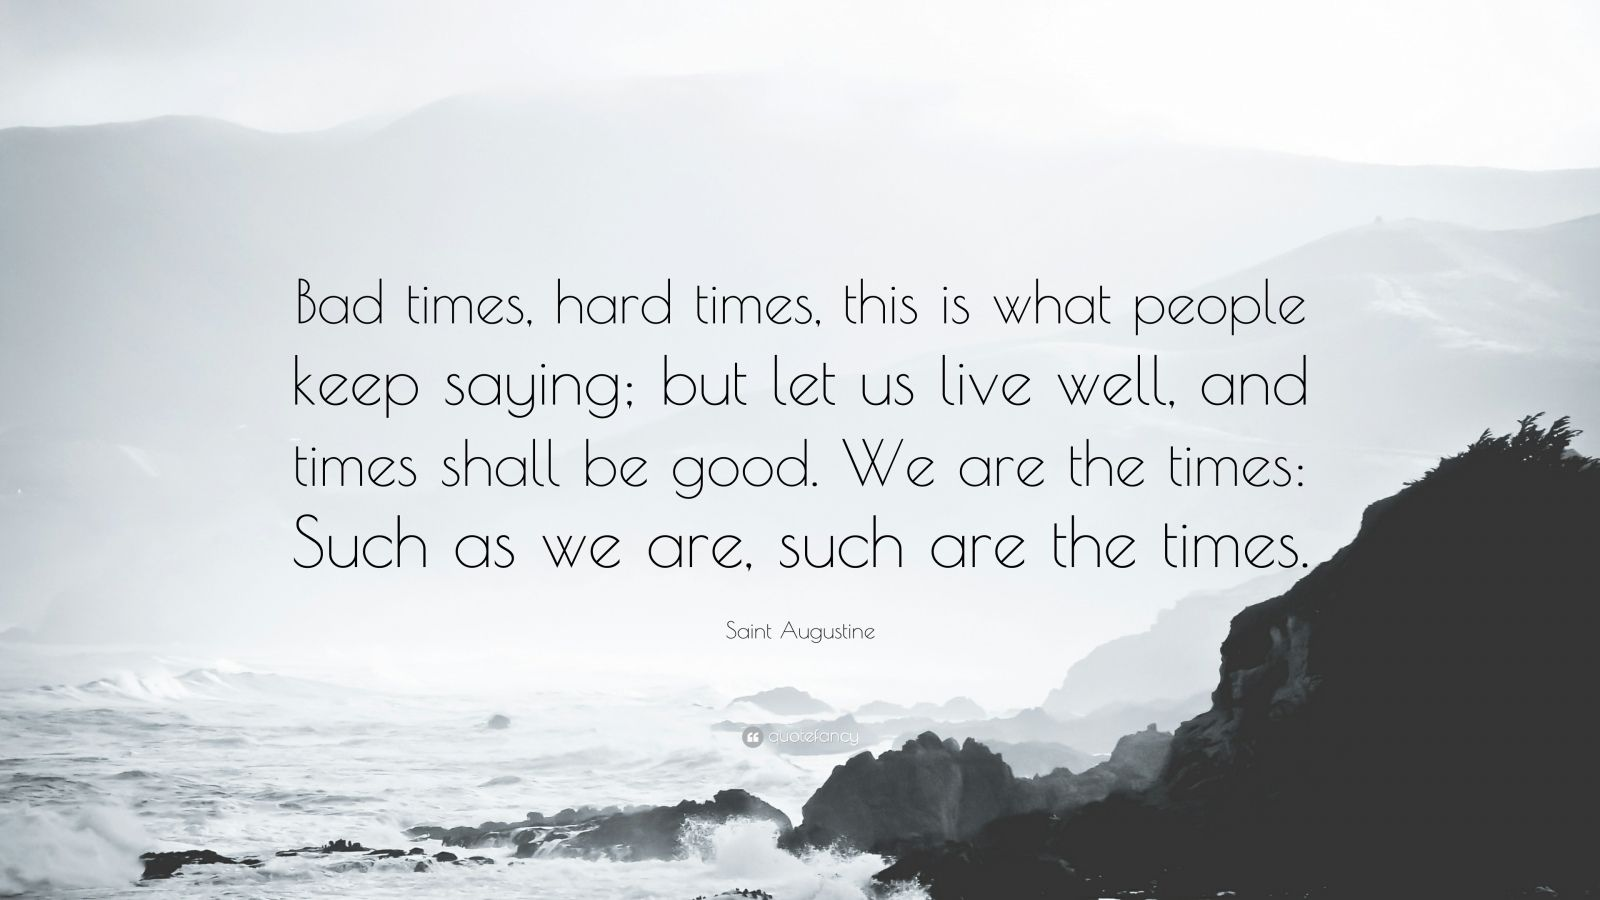 """Saint Augustine Quote: """"Bad times, hard times, this is what people keep saying; but let us live well, and times shall be good. We are the times: Such as we are, such are the times."""""""